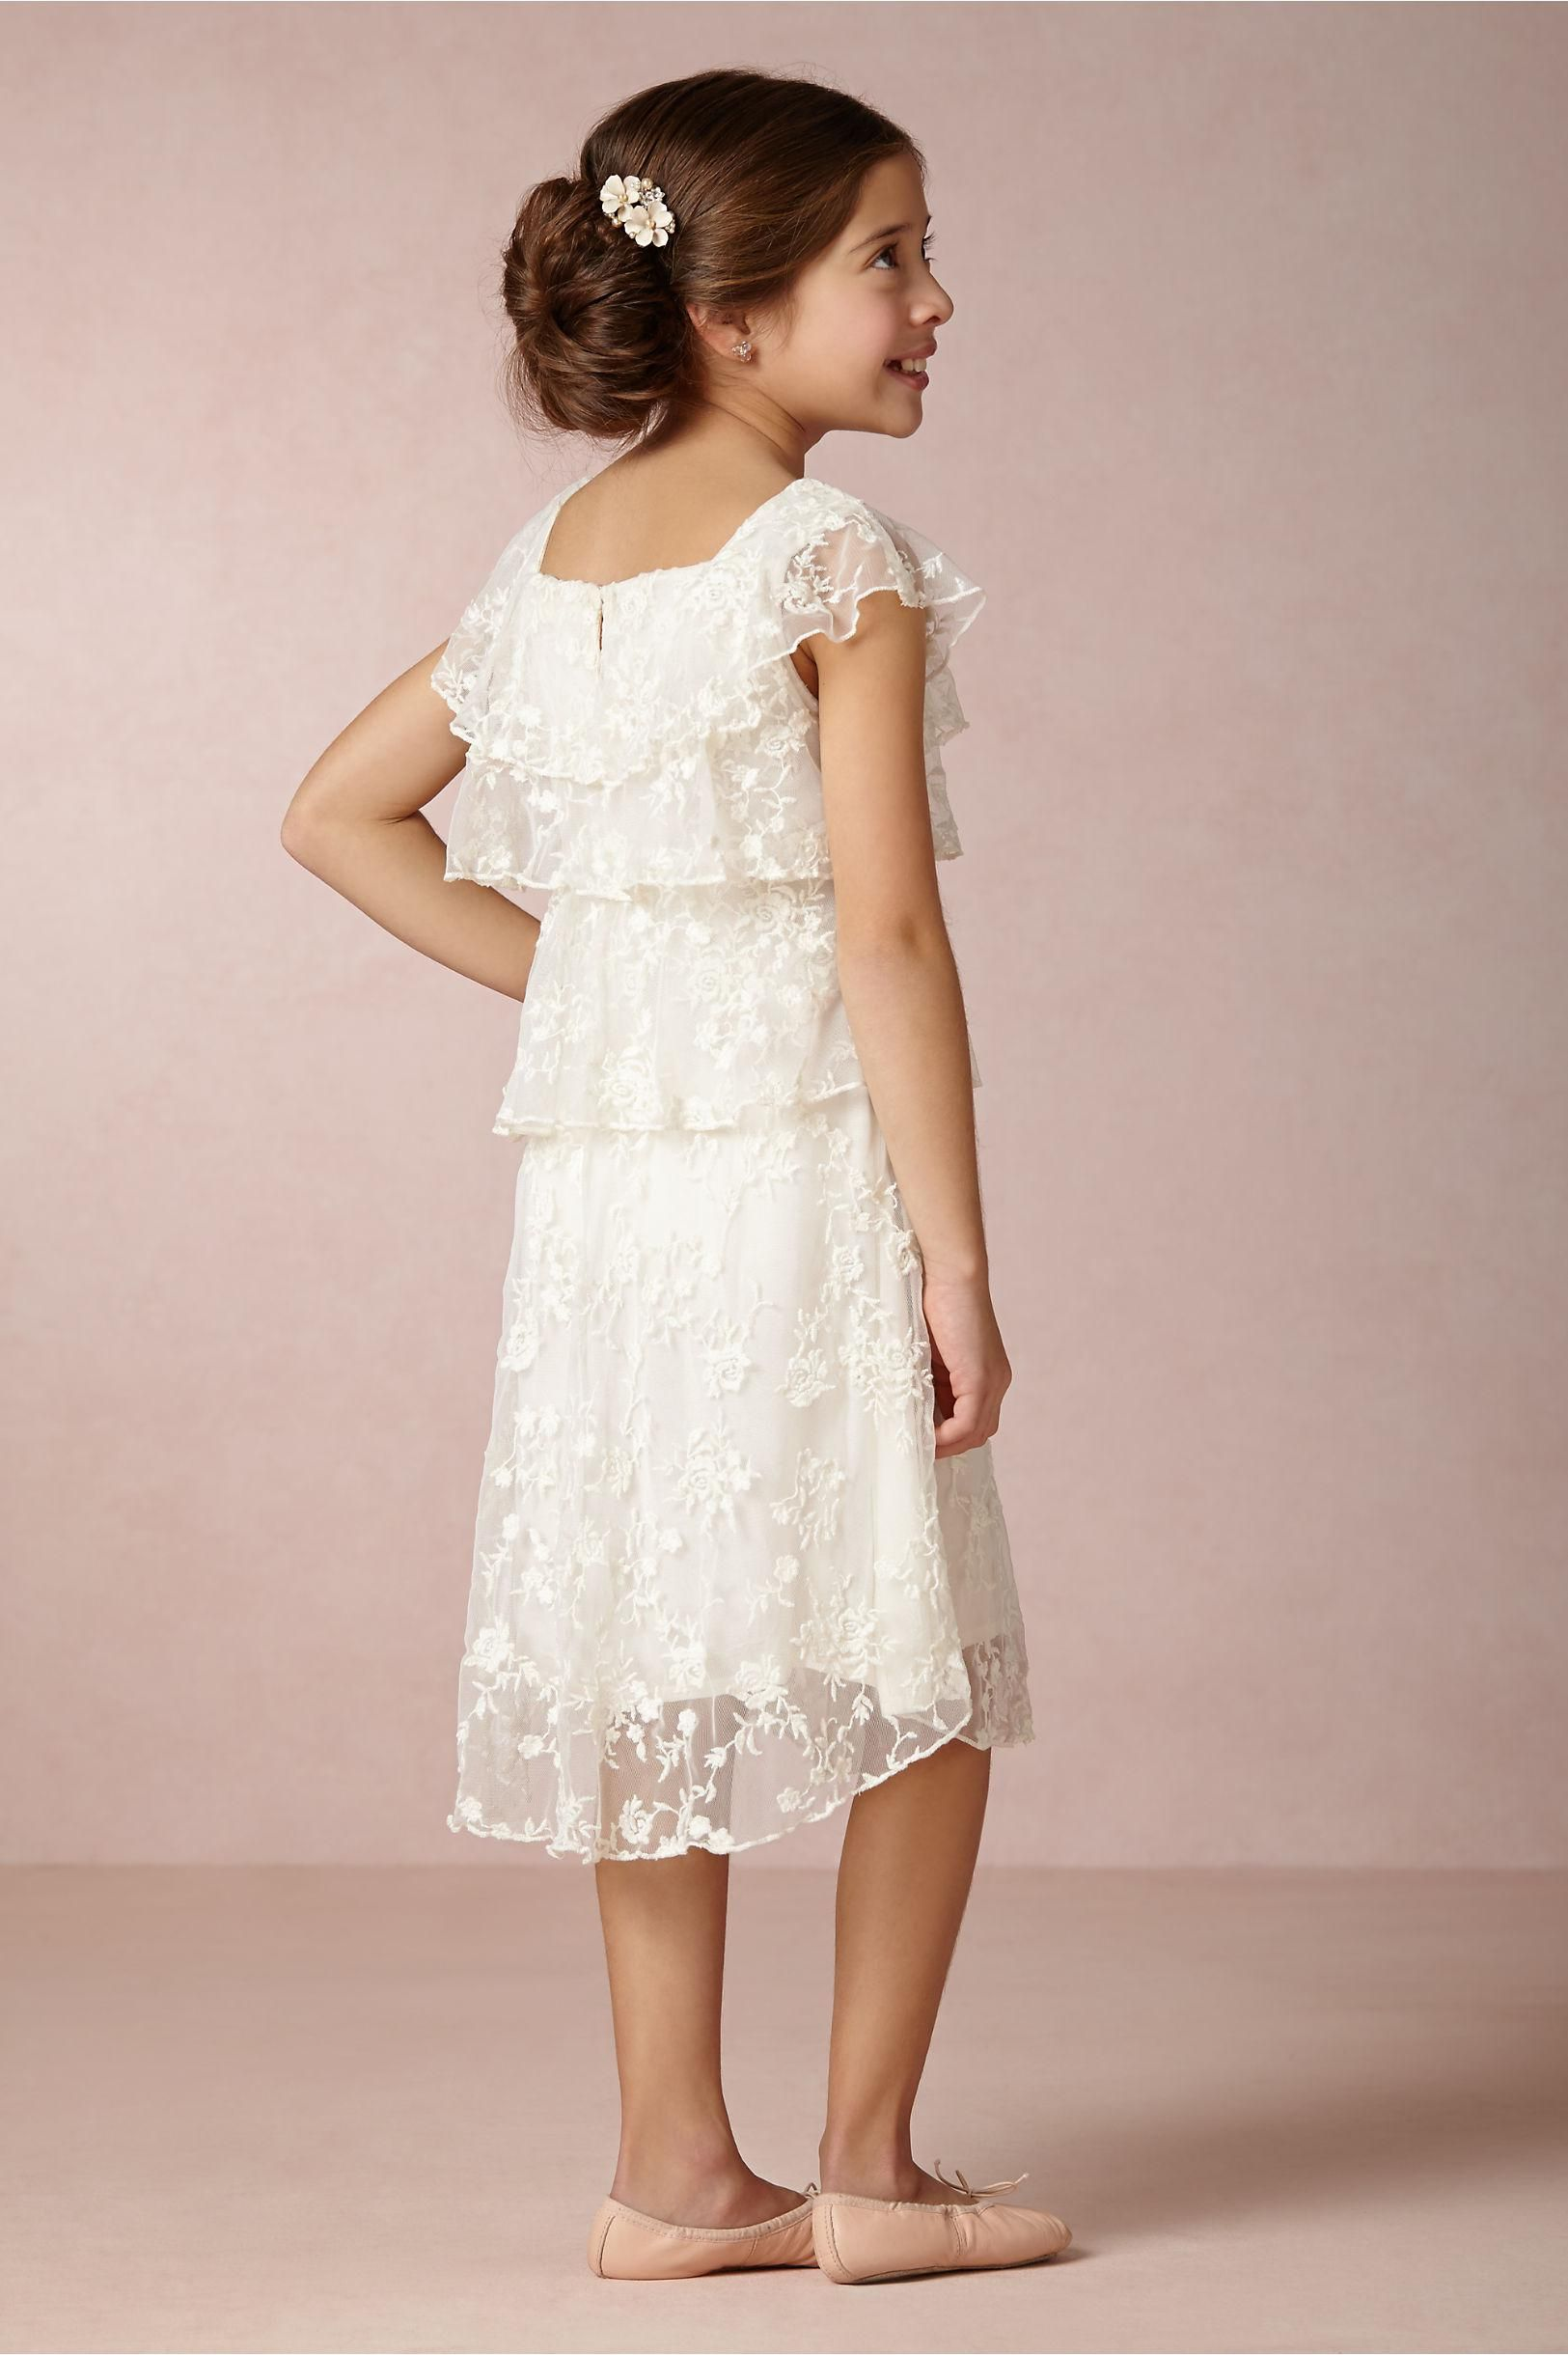 Cheap Flower Girl Dresses Under 20 Dreamy Frock Features ...